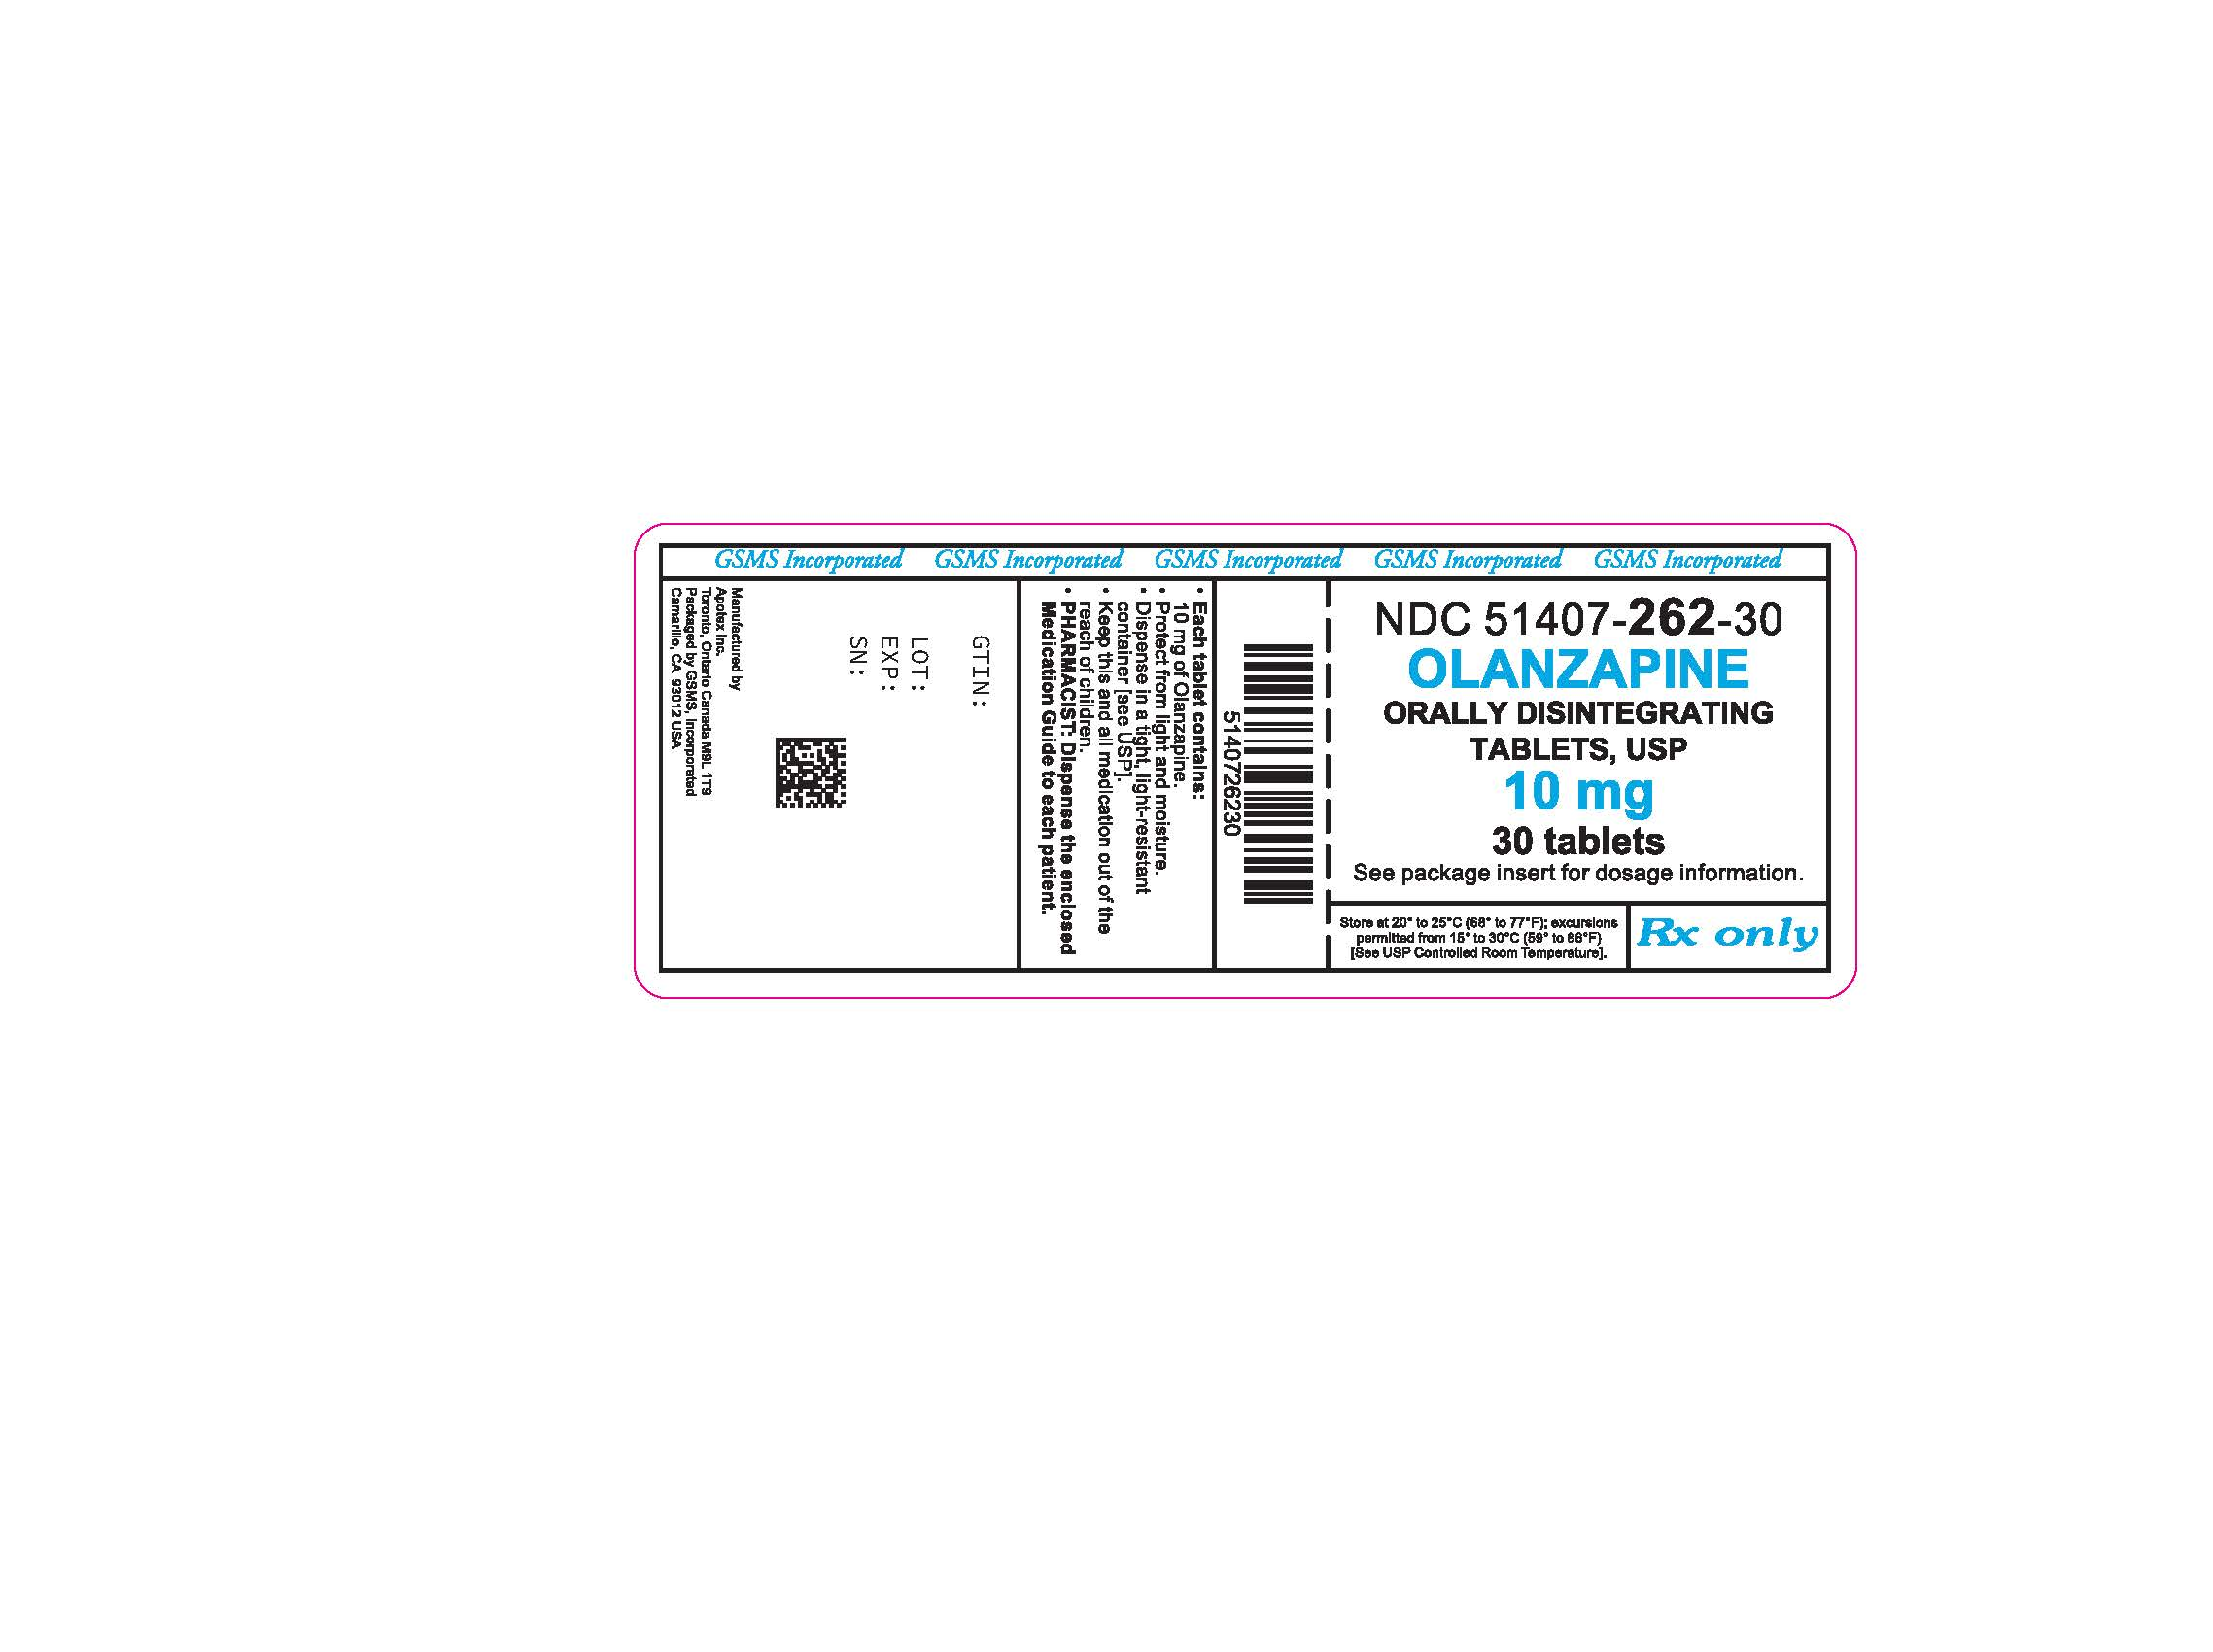 51407-262-30LB OLANZAPINE 10 MG ODT.jpg